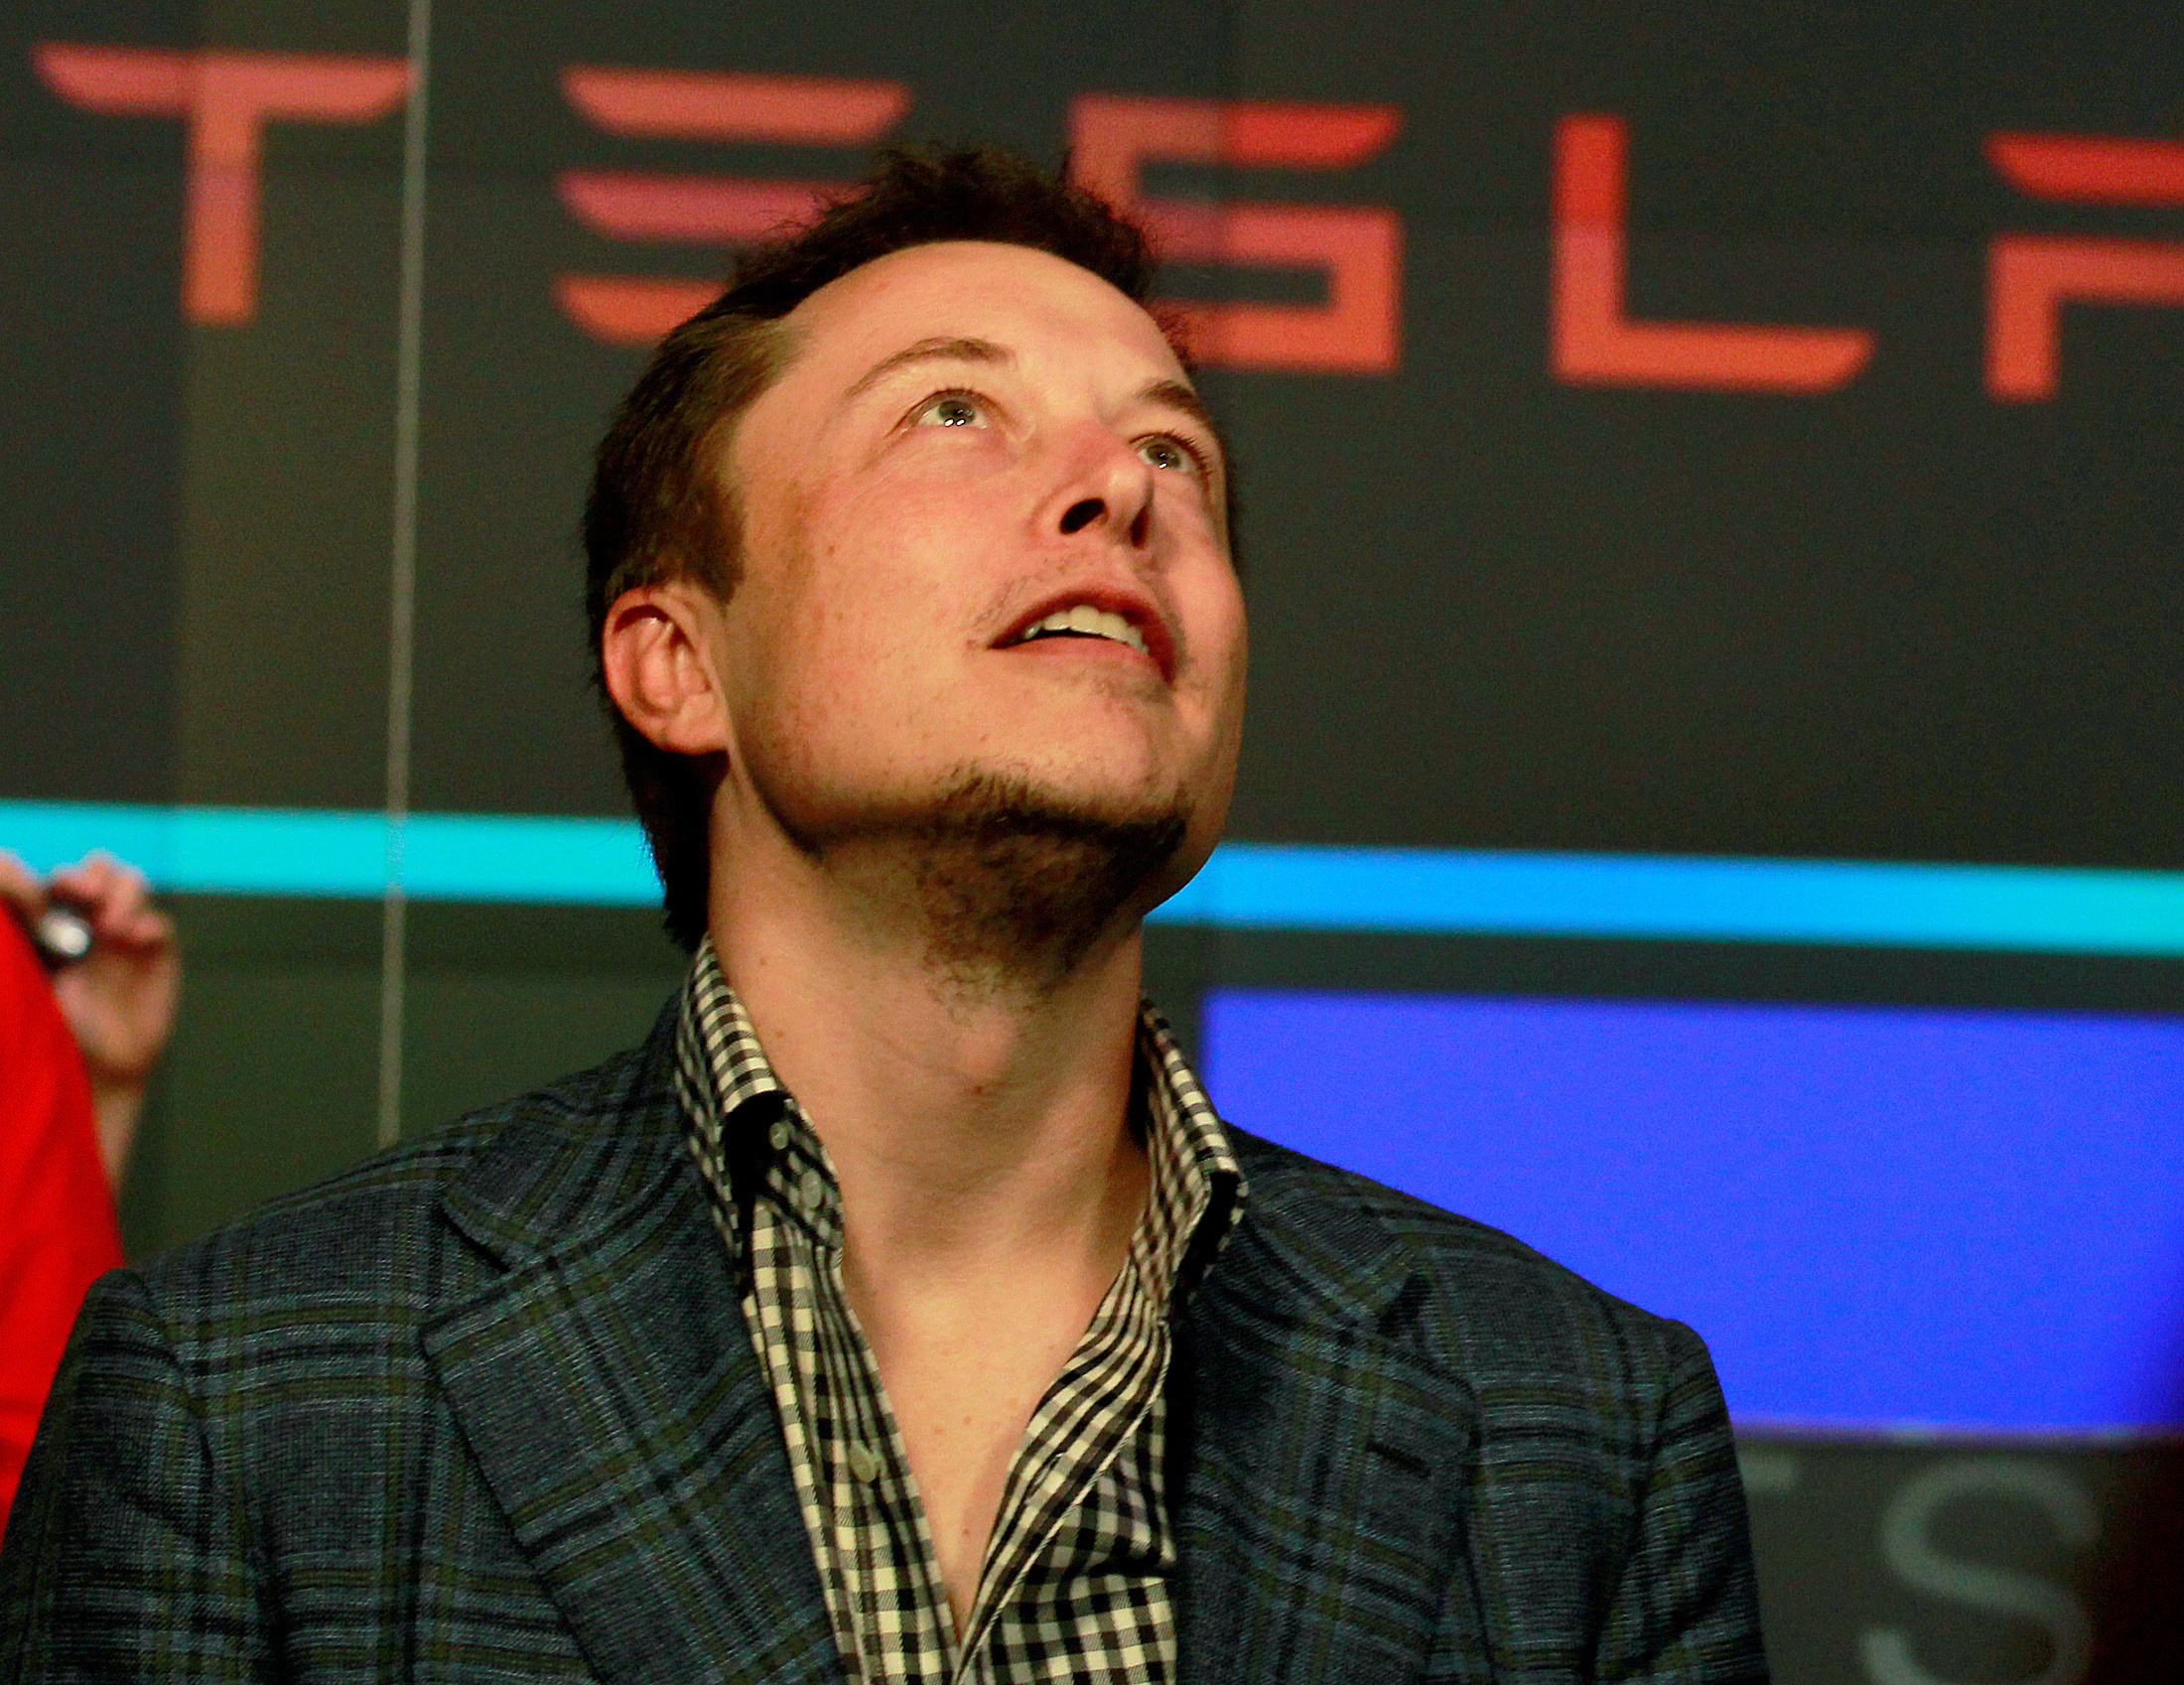 CEO of Tesla Motors Elon Musk reacts following the company's initial public offering at the NASDAQ market in New York June 29, 2010. REUTERS/Brendan McDermid//File Photo/File Photo